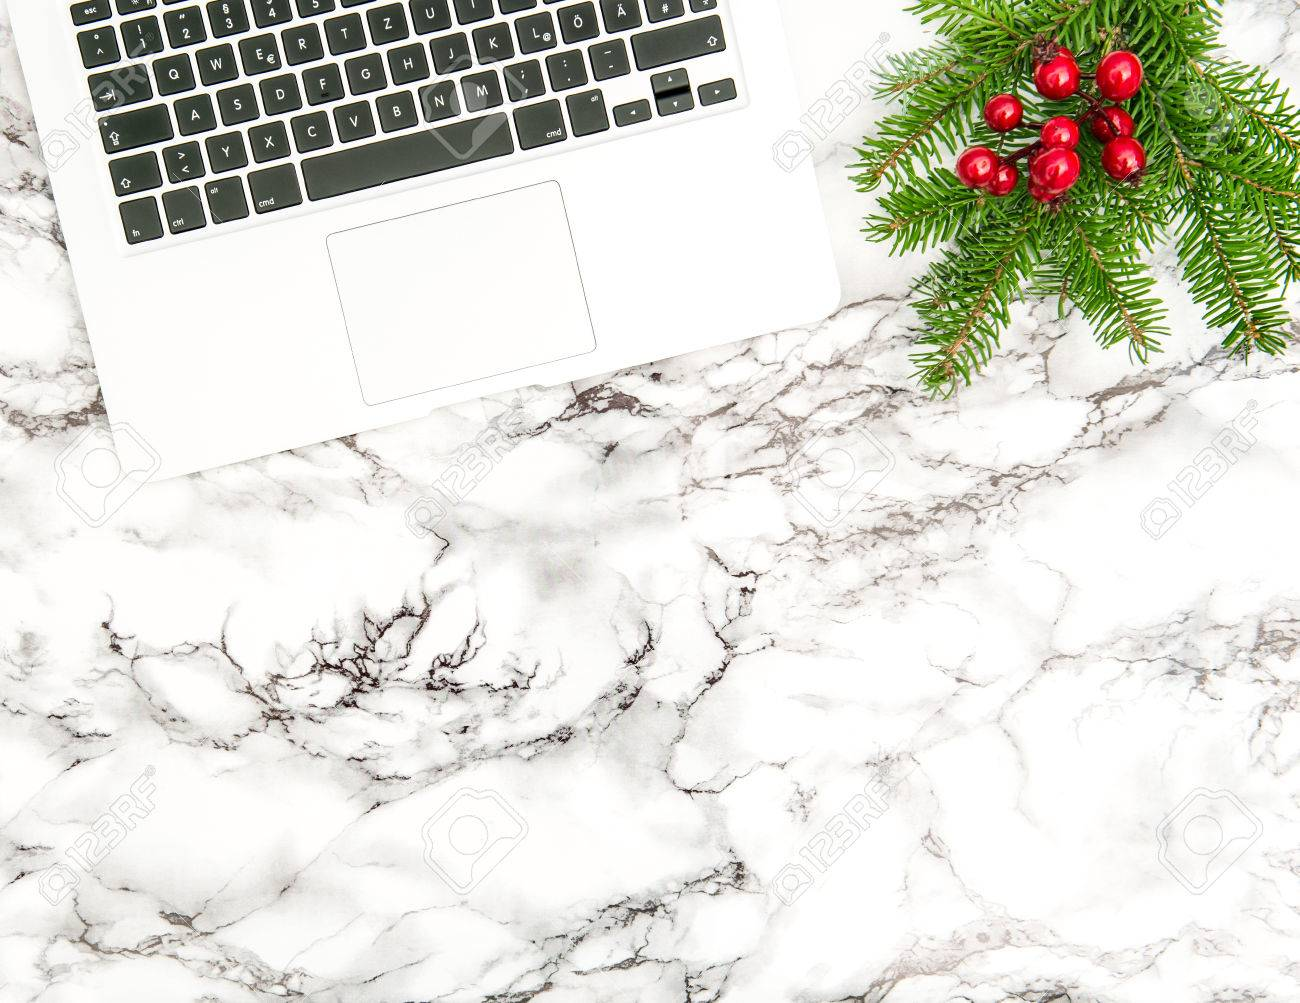 How to start a christmas decor business - Notebook And Christmas Decoration Business Holidays Office Desk Flat Lay Stock Photo 65343716